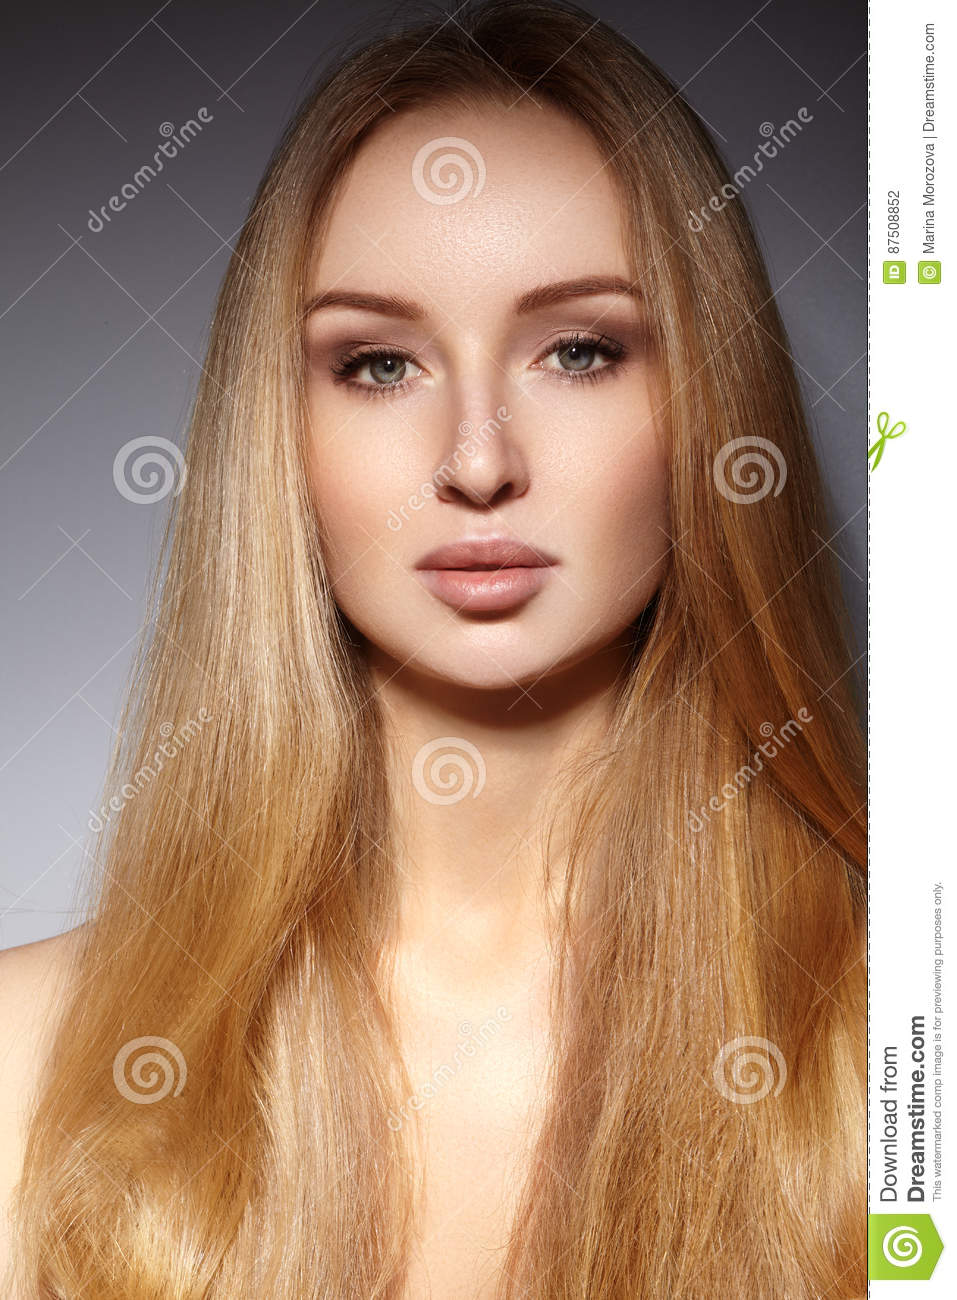 model hair style hairstyle beautiful model with shiny hair stock 8077